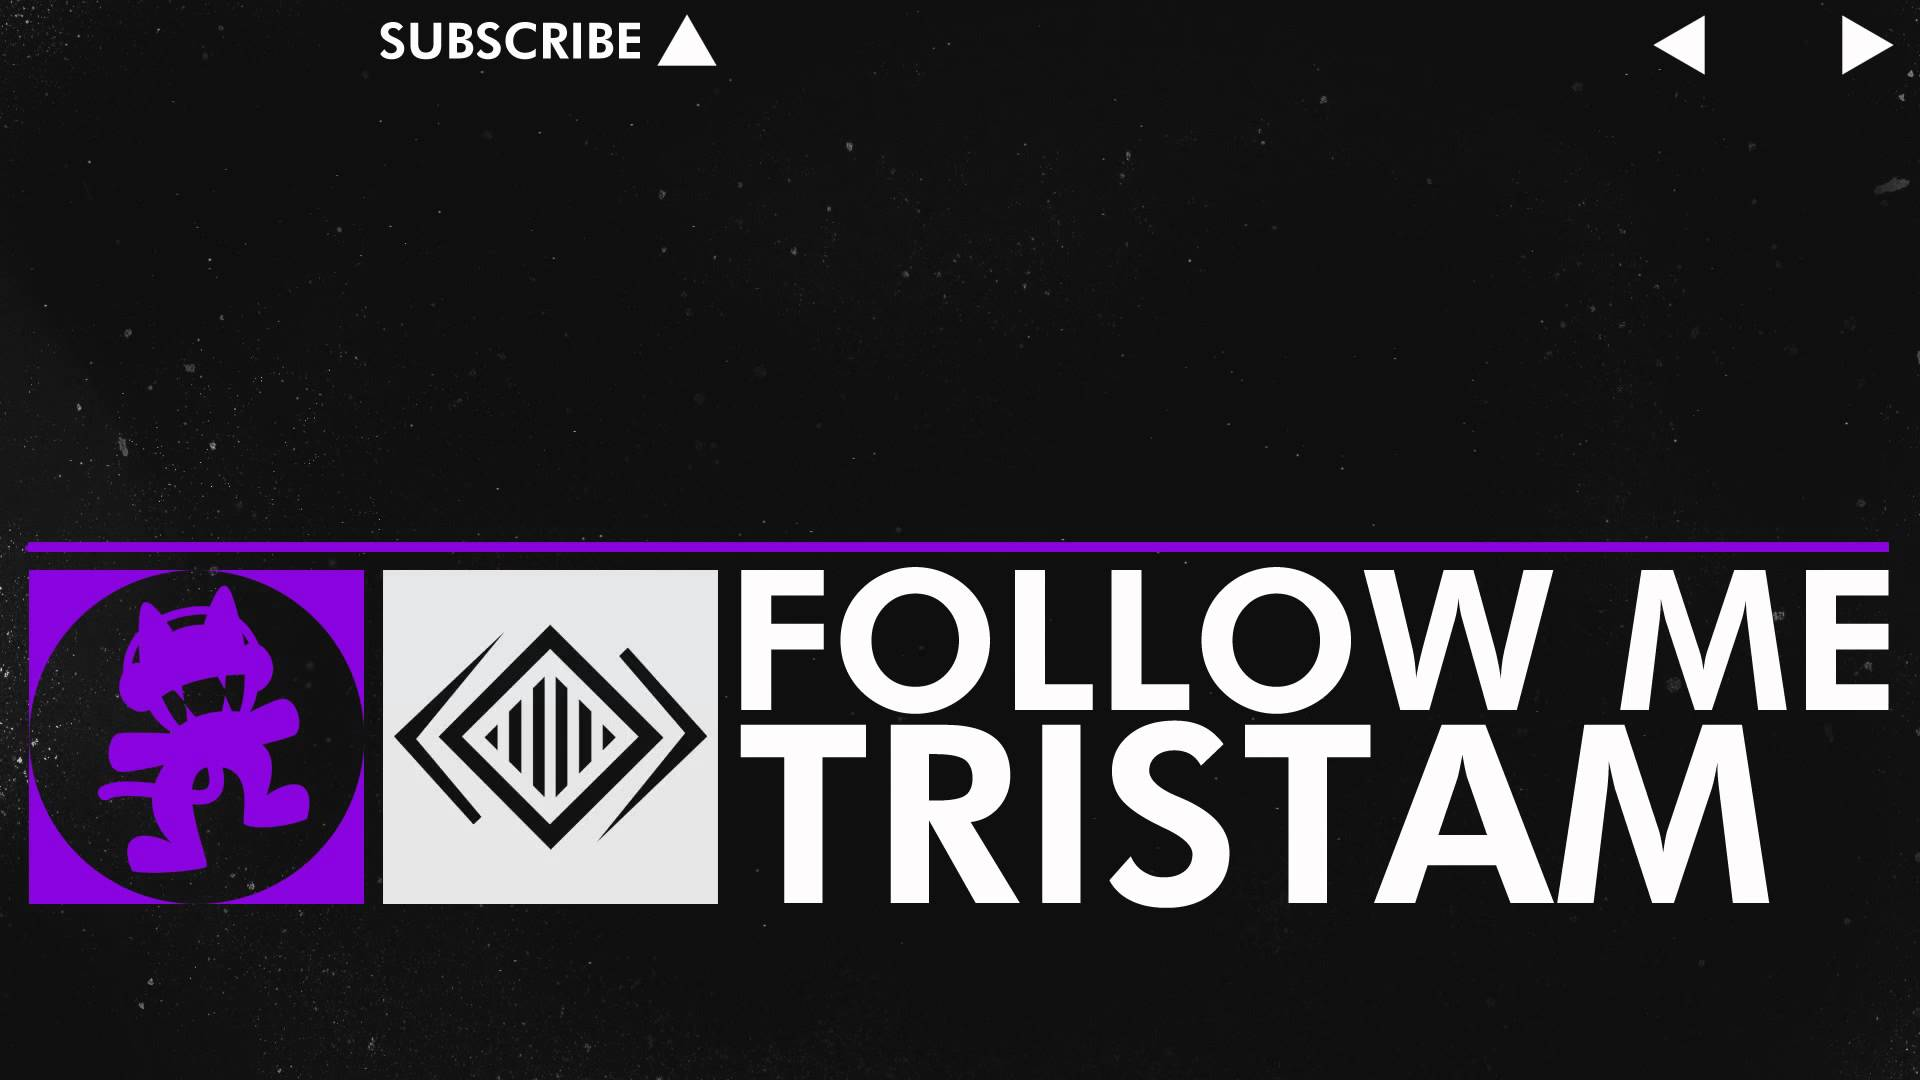 [Dubstep] - Tristam - Follow Me [Monstercat VIP Release]